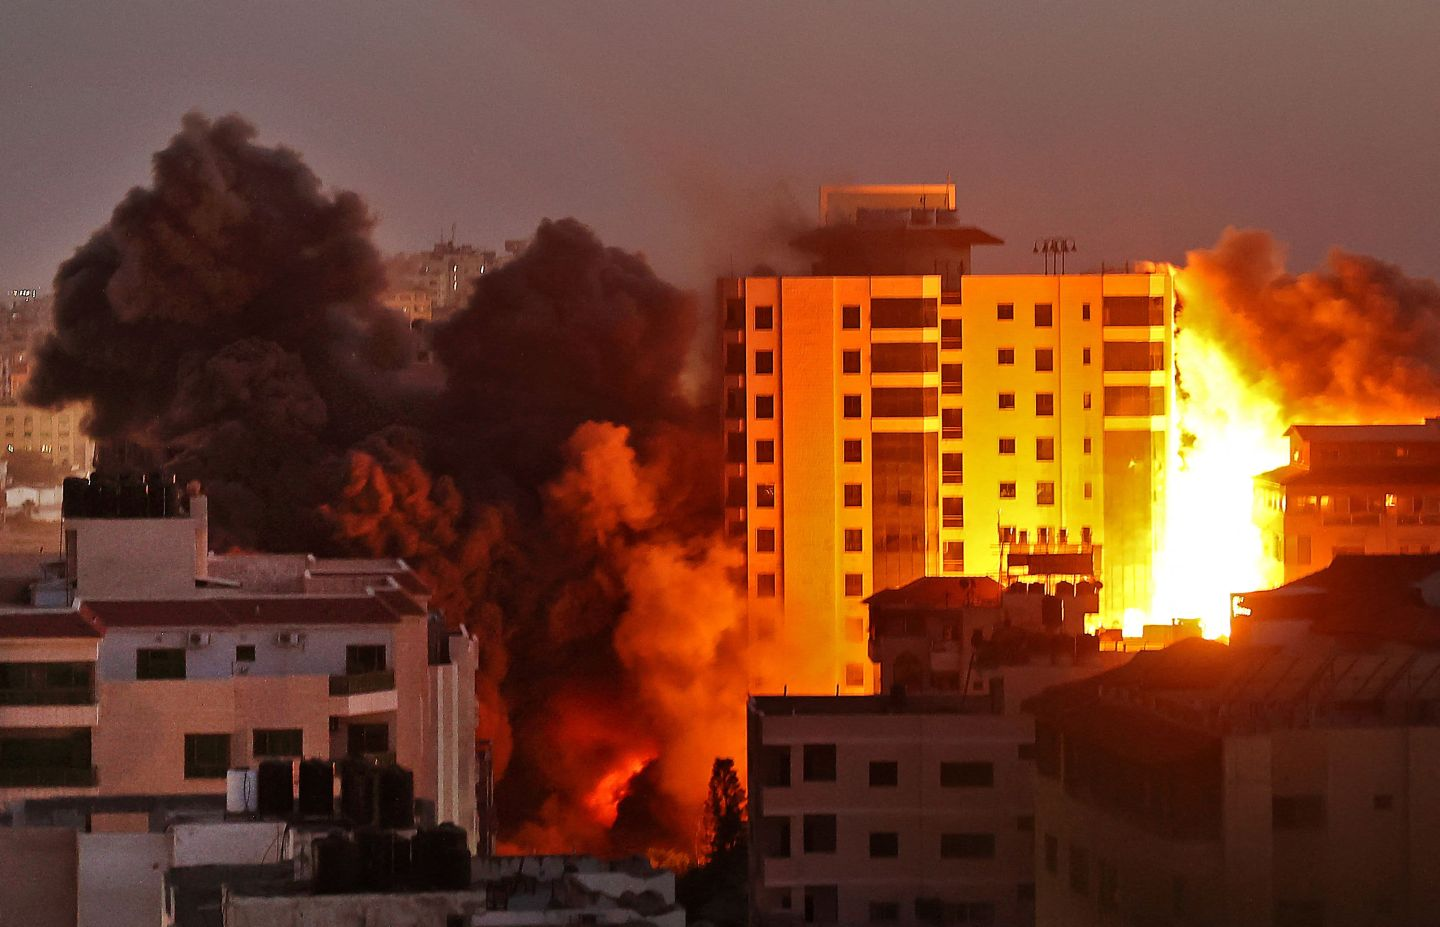 Smoke billows from an Israeli air strike on the Hanadi compound in Gaza City, controlled by the Palestinian Hamas movement, on May 11, 2021.